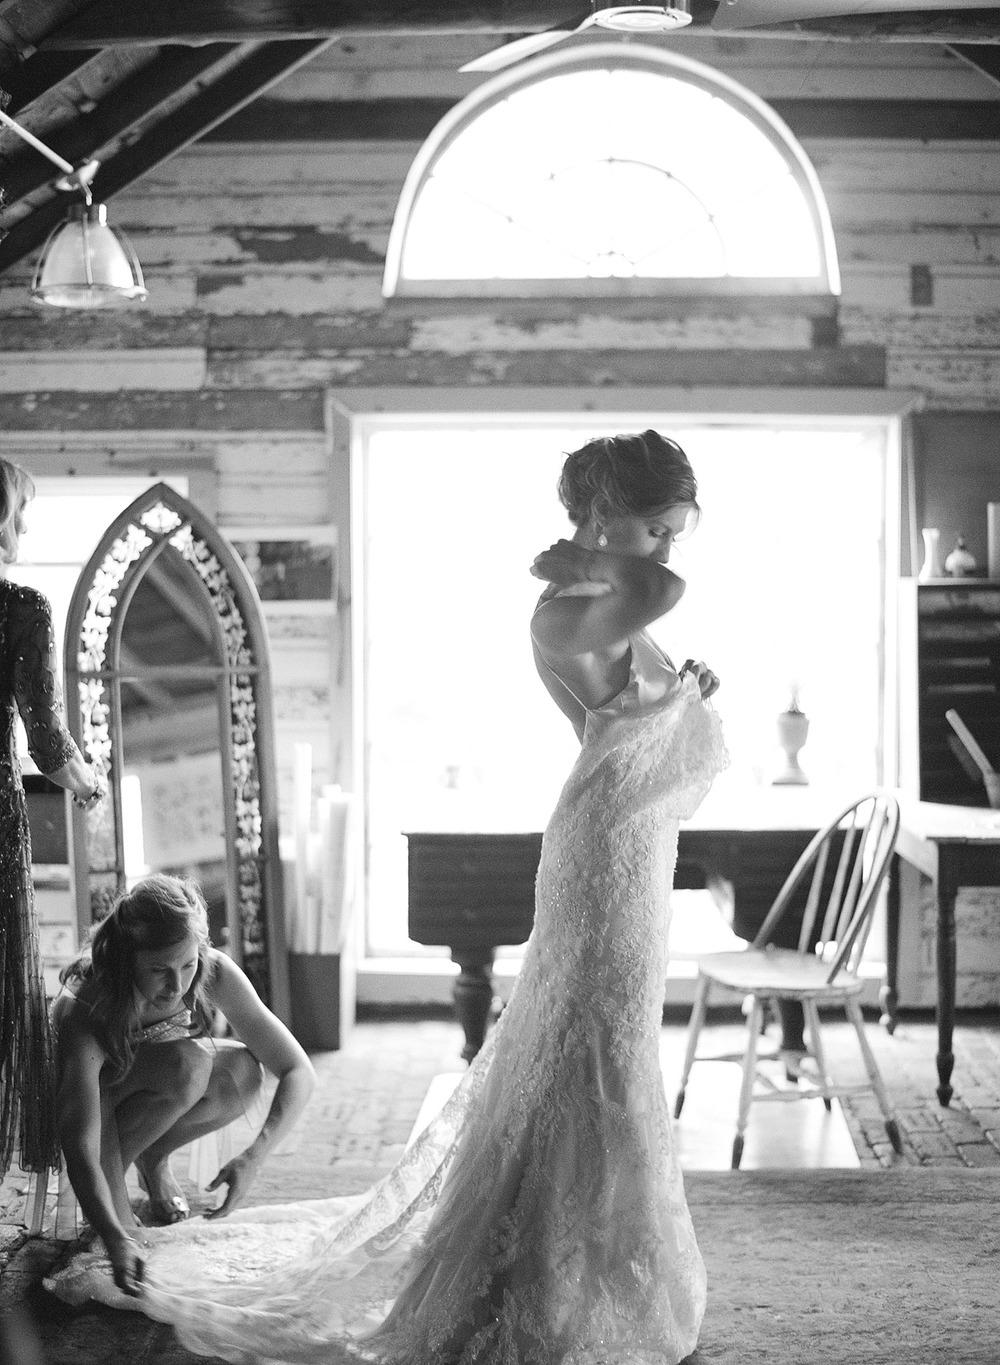 Destination wedding photographer Lexia Frank Photographs a bride getting ready at the Northwind Perennial Farms in Wisconsin in black and white wedding photography www.lexiafrank (dot) com